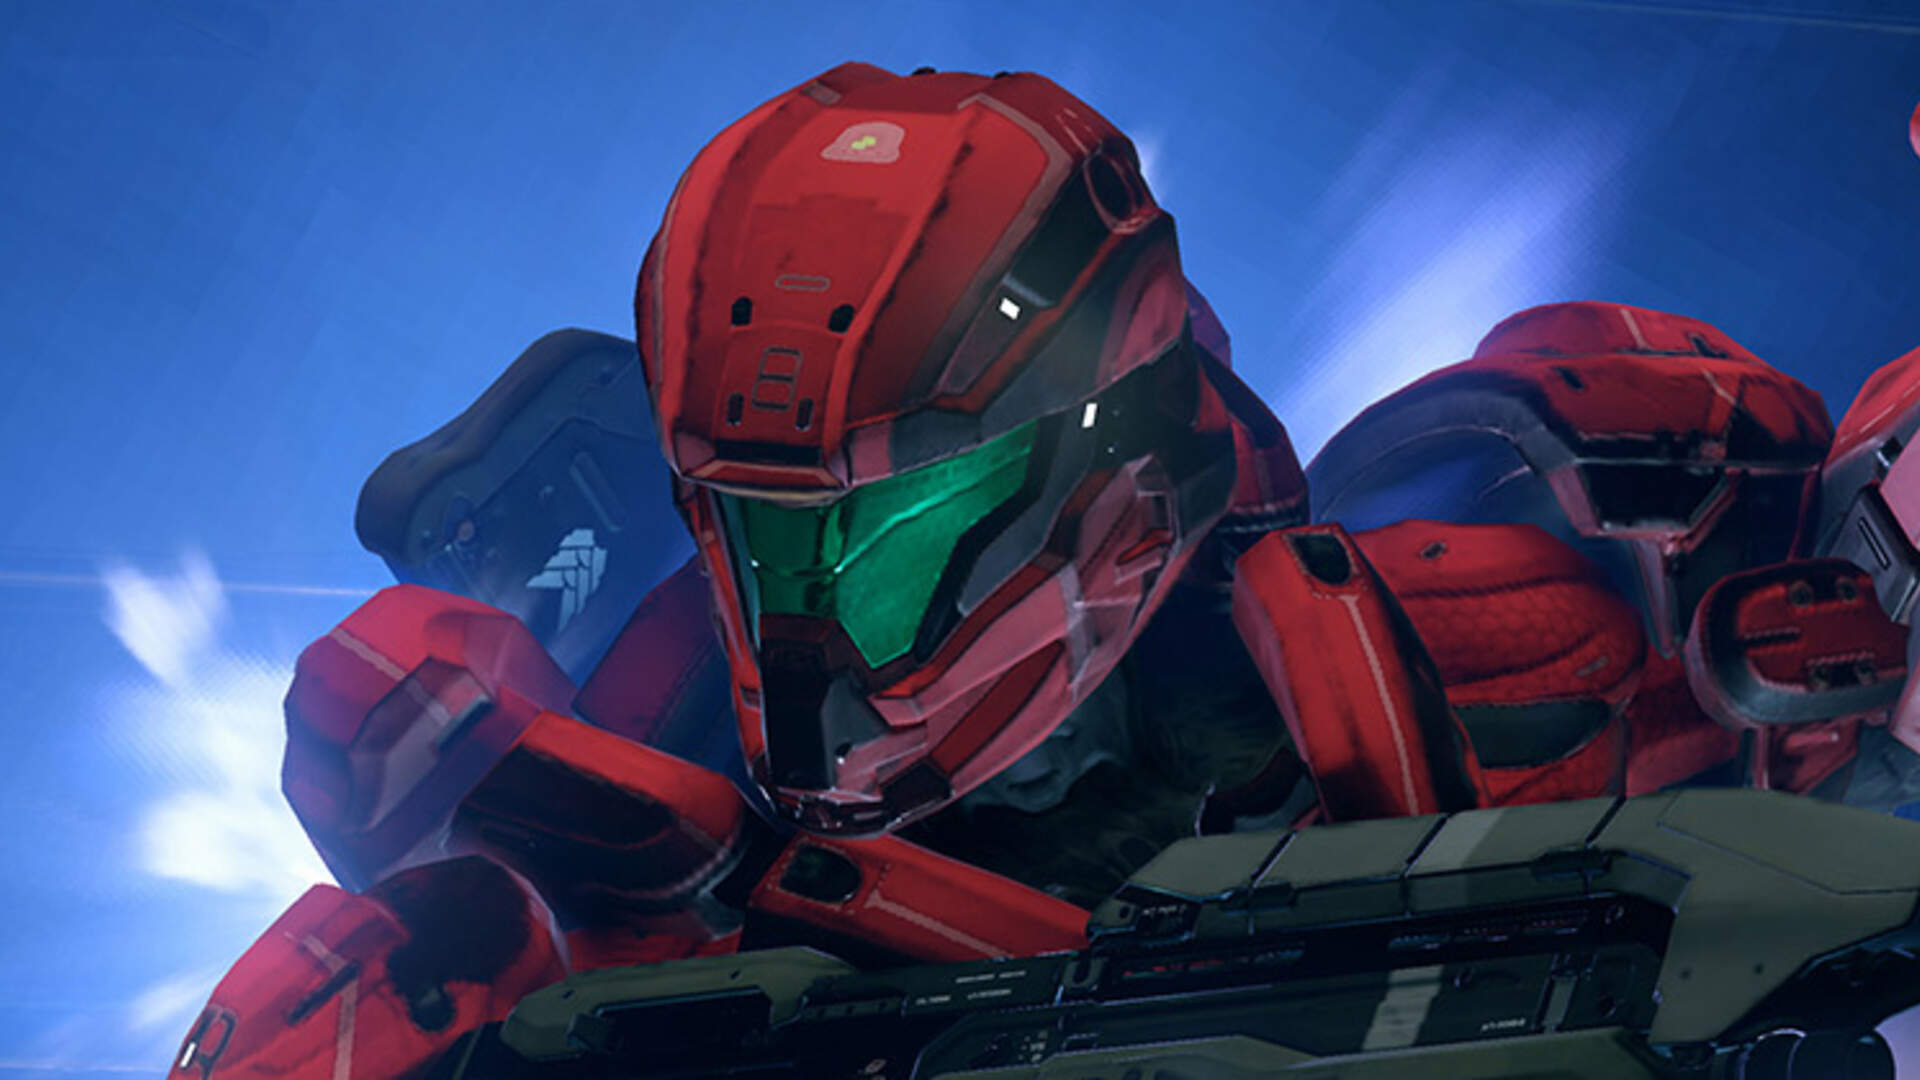 Halo 5: Guardians - Arena Overview Guide - Arena Basics and Tips